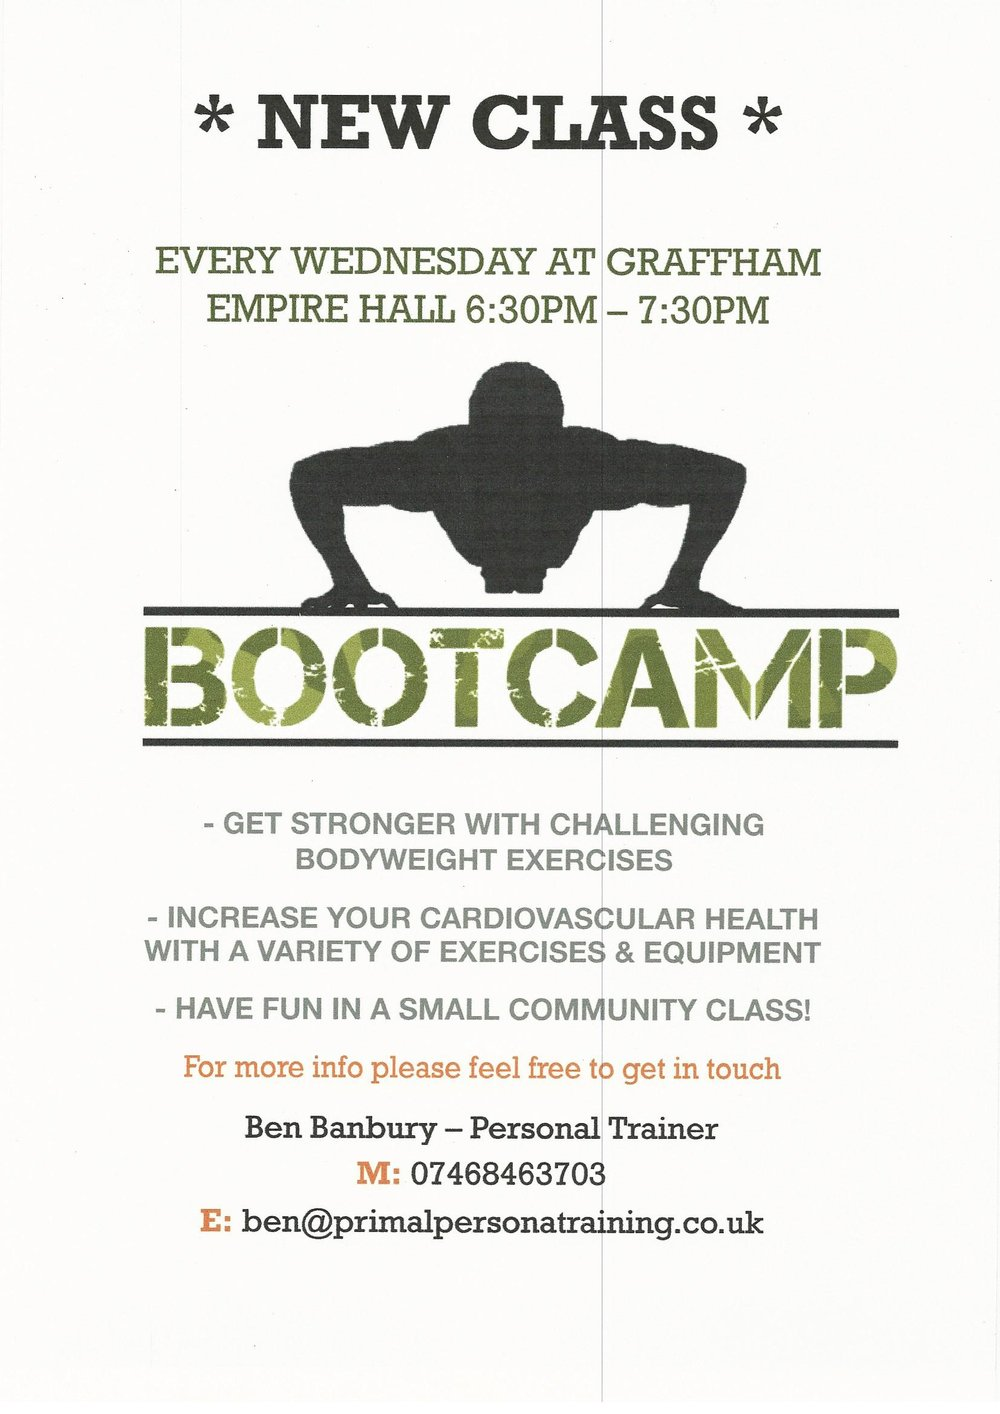 Bootcamp in Graffham